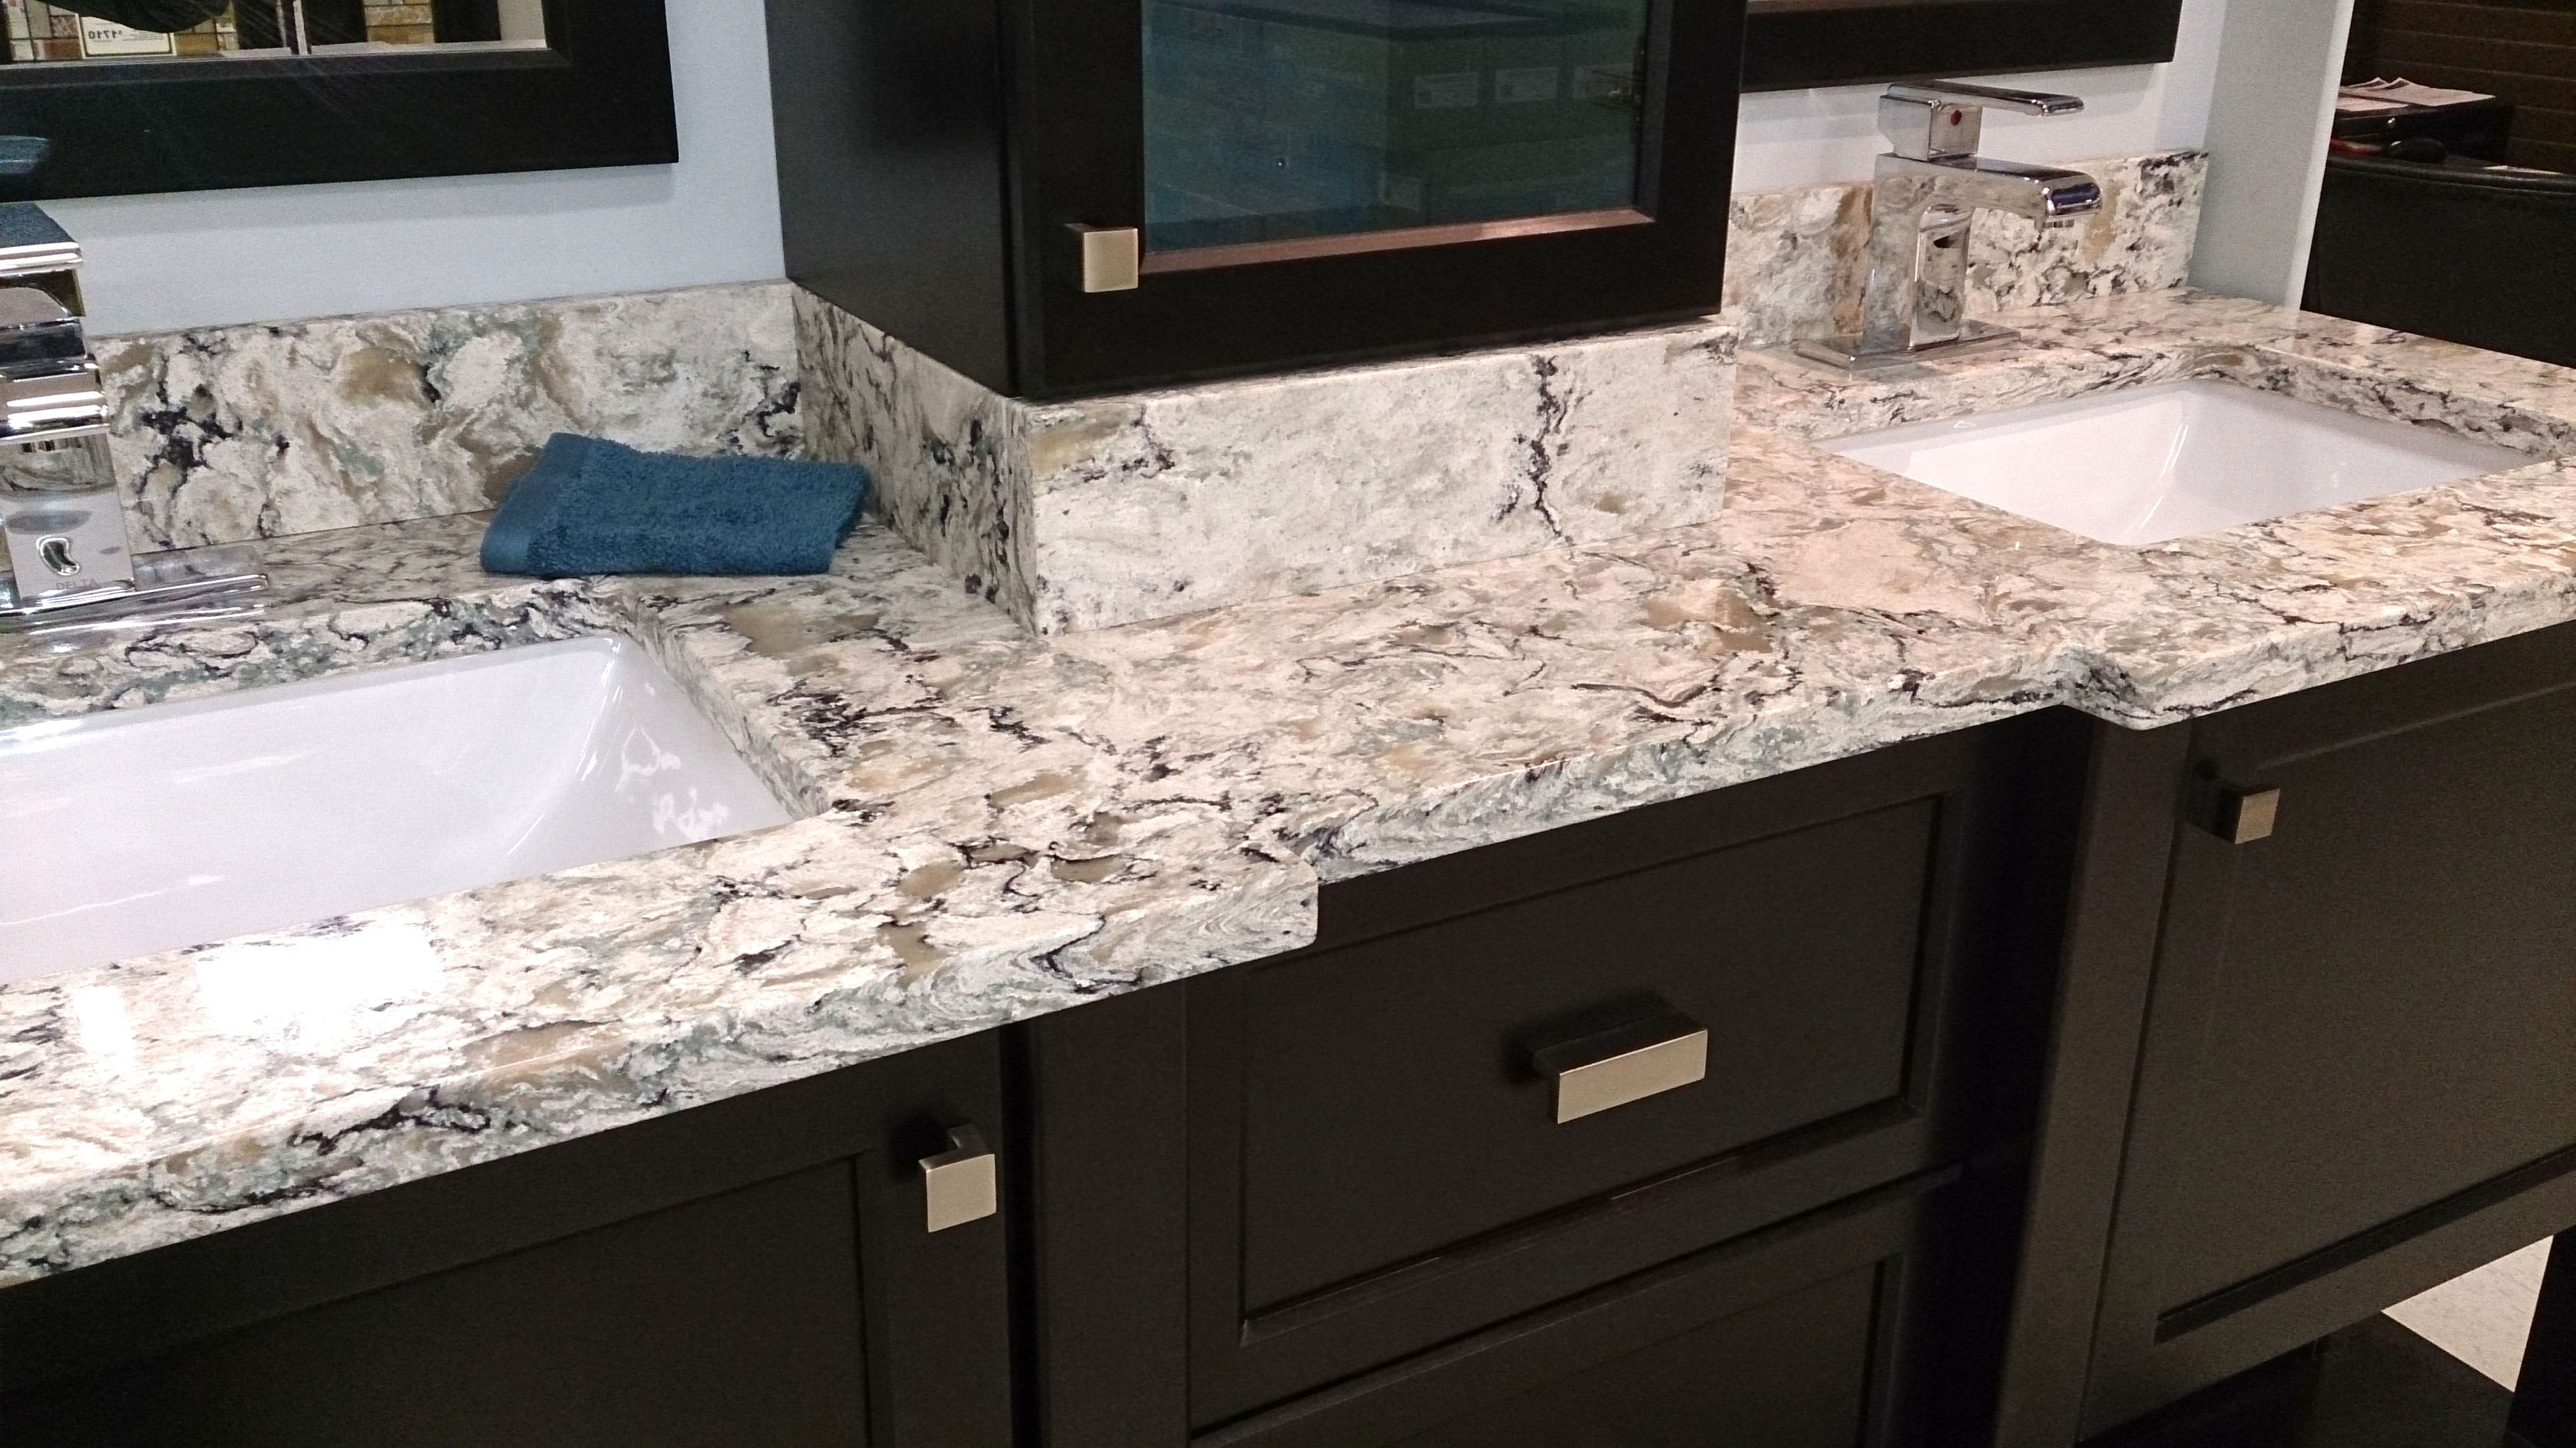 Cambria Praa Sands With Matching Backsplash And Bump Outs Around The Sinks Quartz Bathroom Lavatory Design